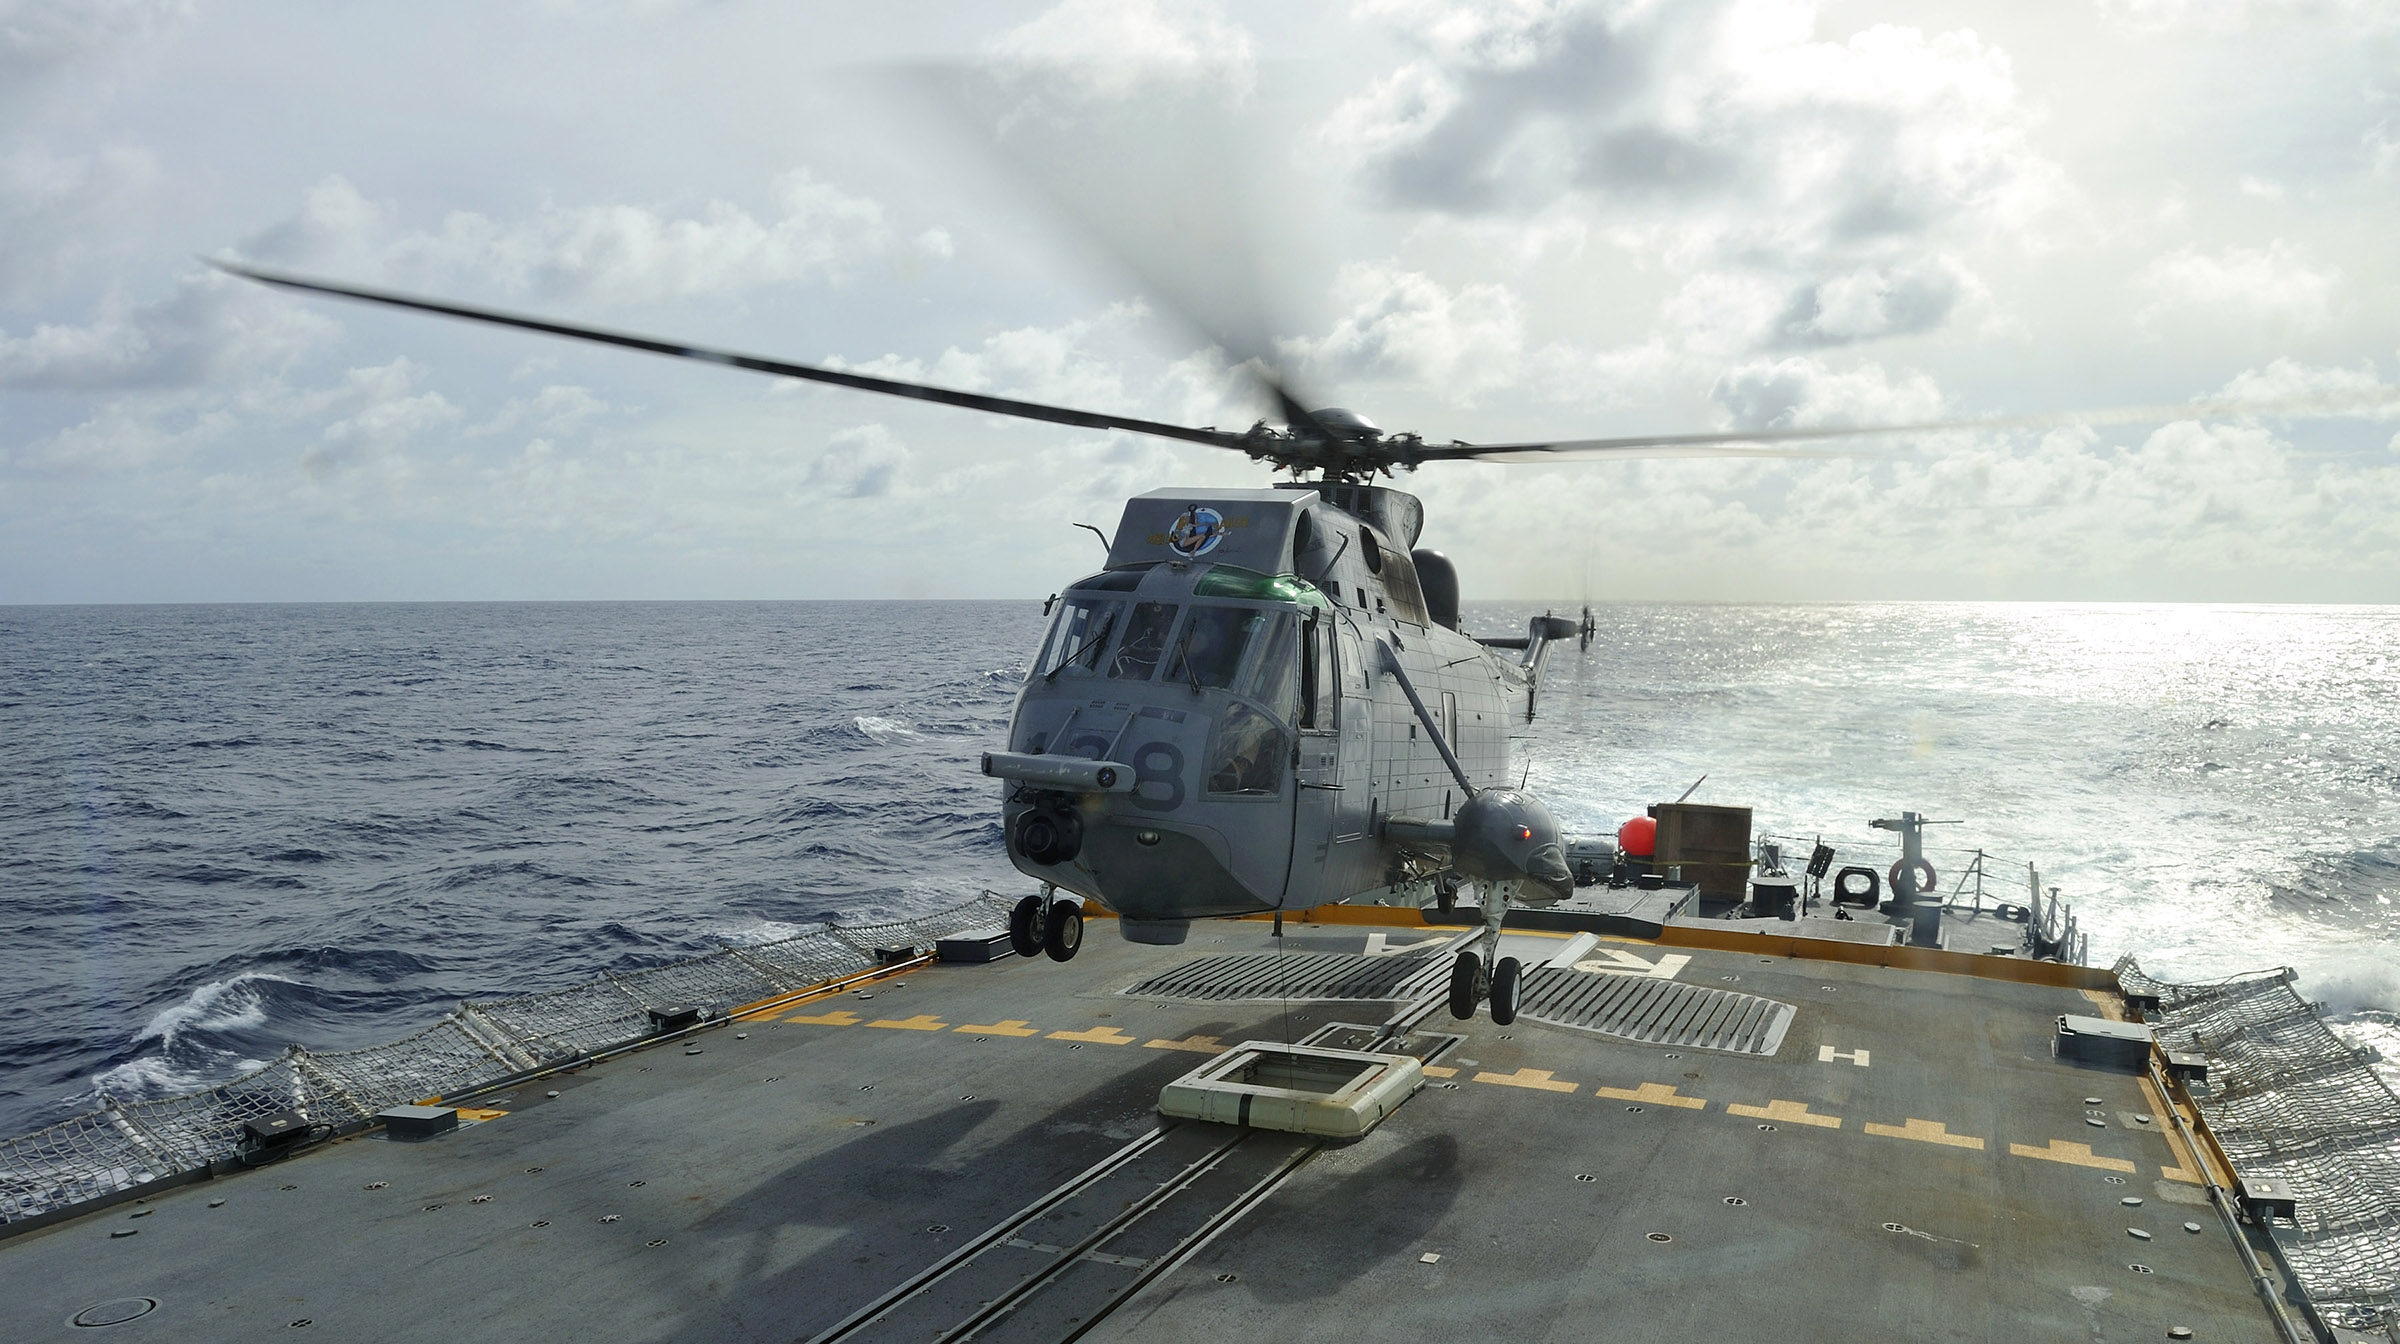 A large helicopter hovers a metre or two above the flight deck of a ship.